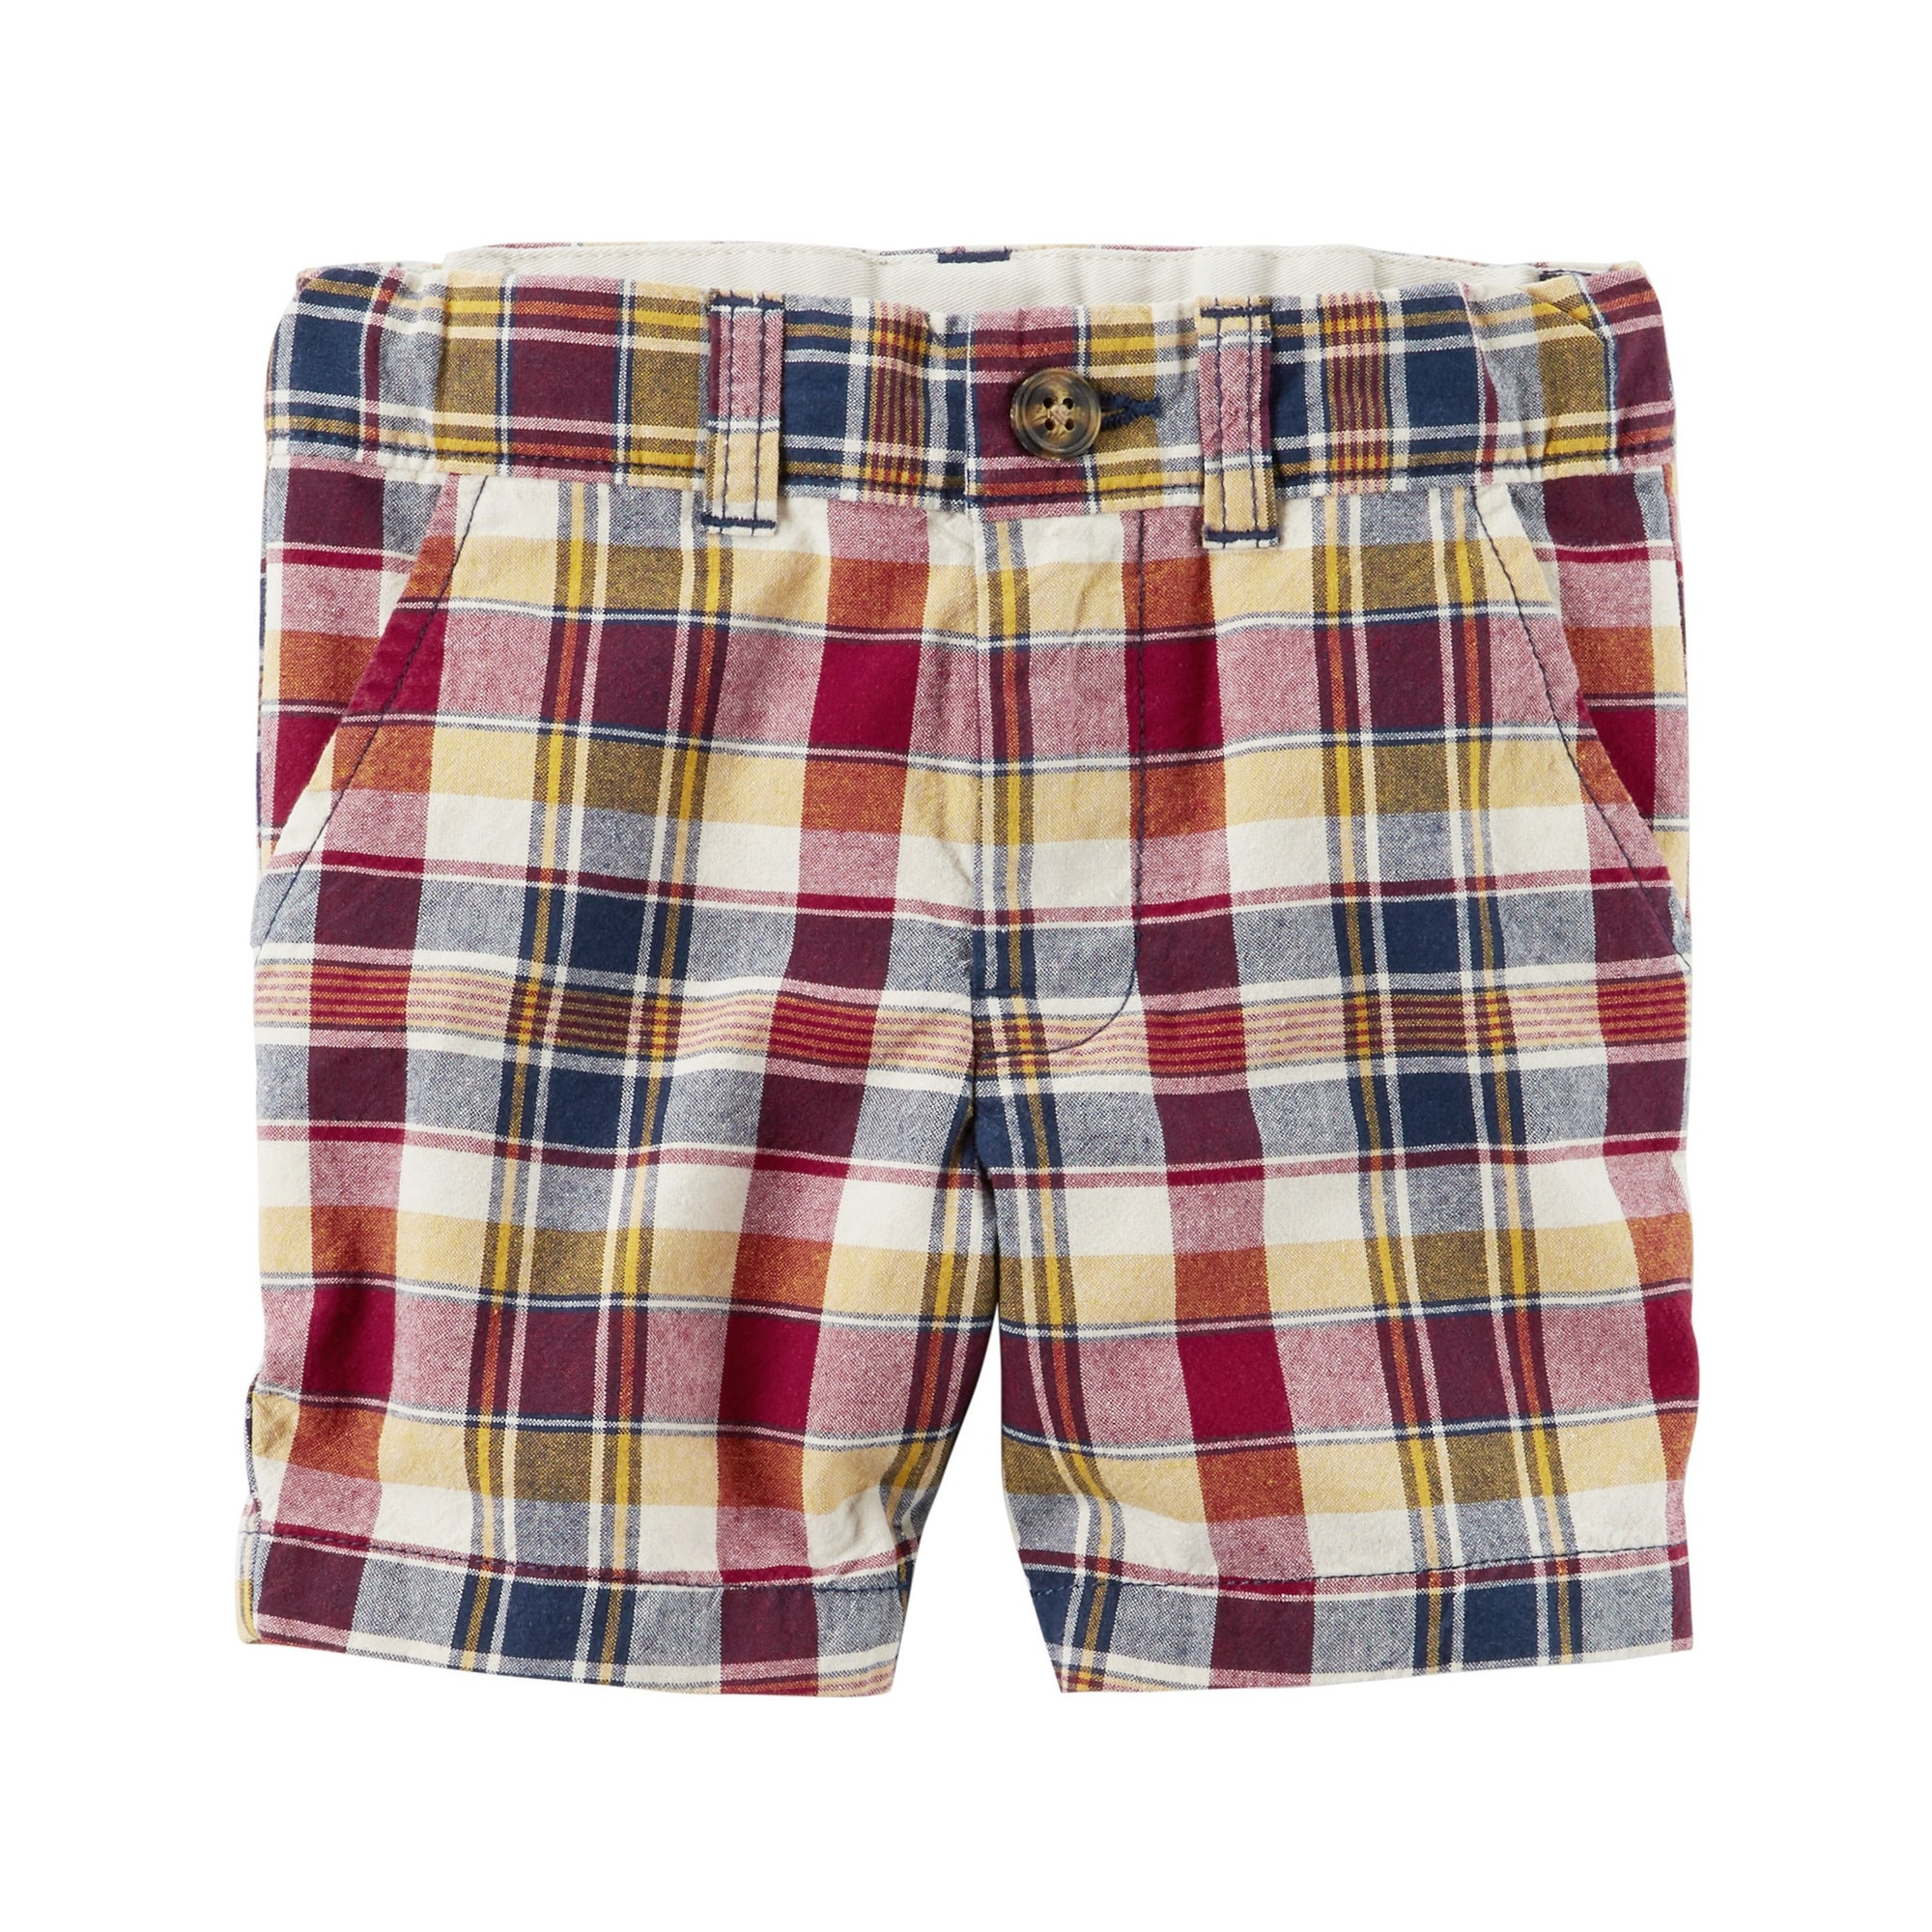 2561dc620b Carter's Boys' Clothing | Find Great Children's Clothing Deals Shopping at  Overstock